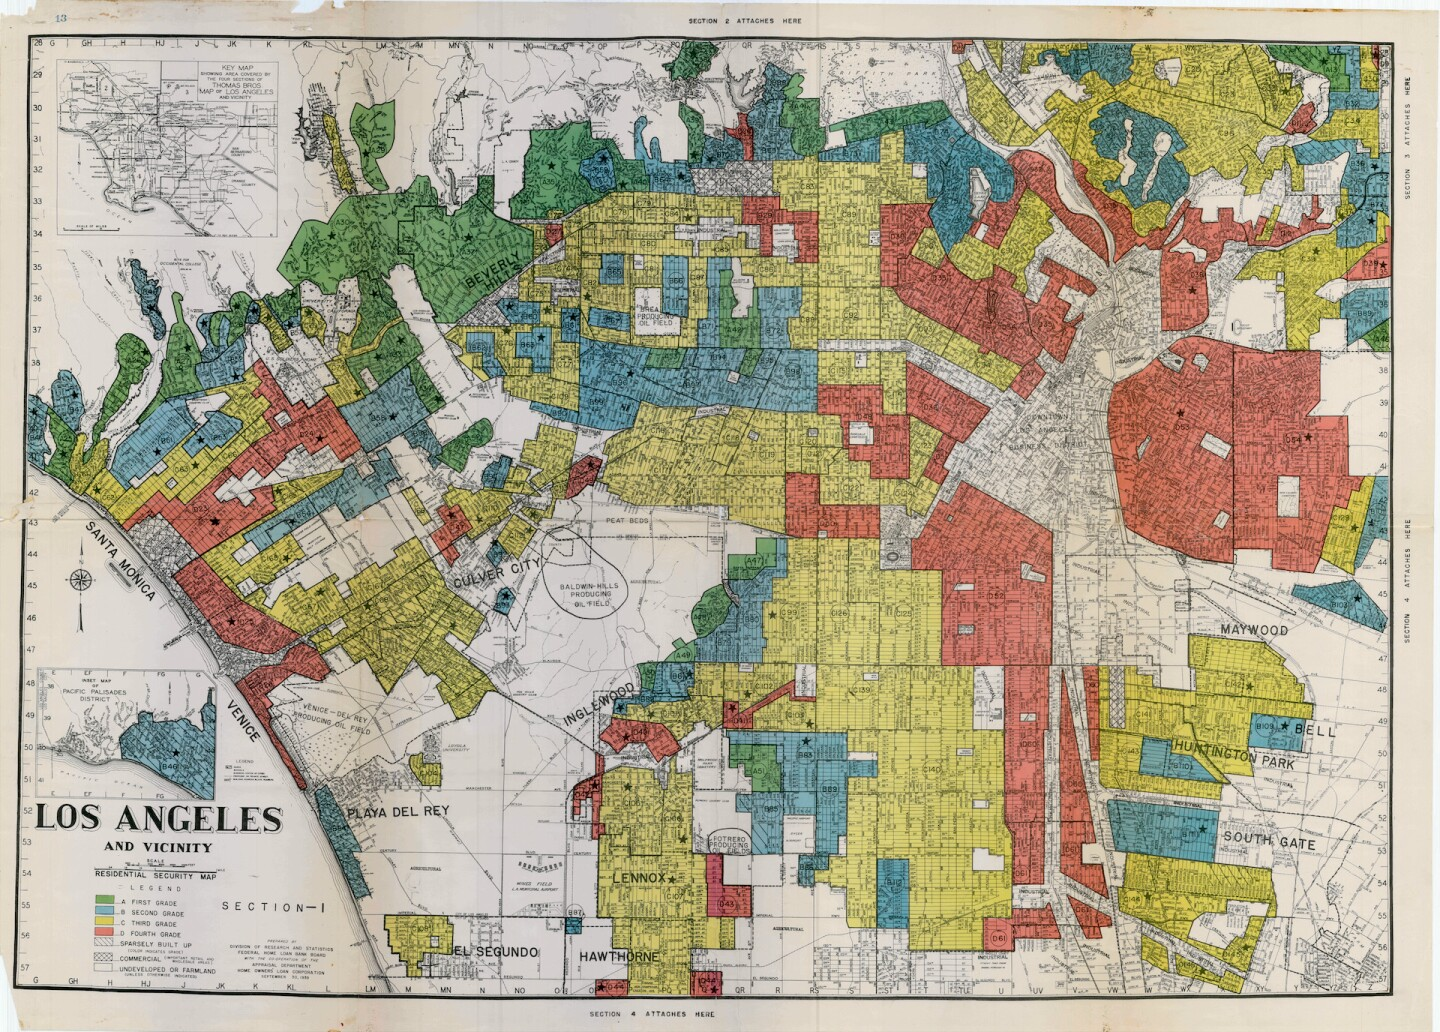 The map aboveshows the Home Owners Loan Corporation (HOLC) redlining of Los Angeles in 1939 with Westlake primarily coded red and Silver Lake blue. | University of Richmond